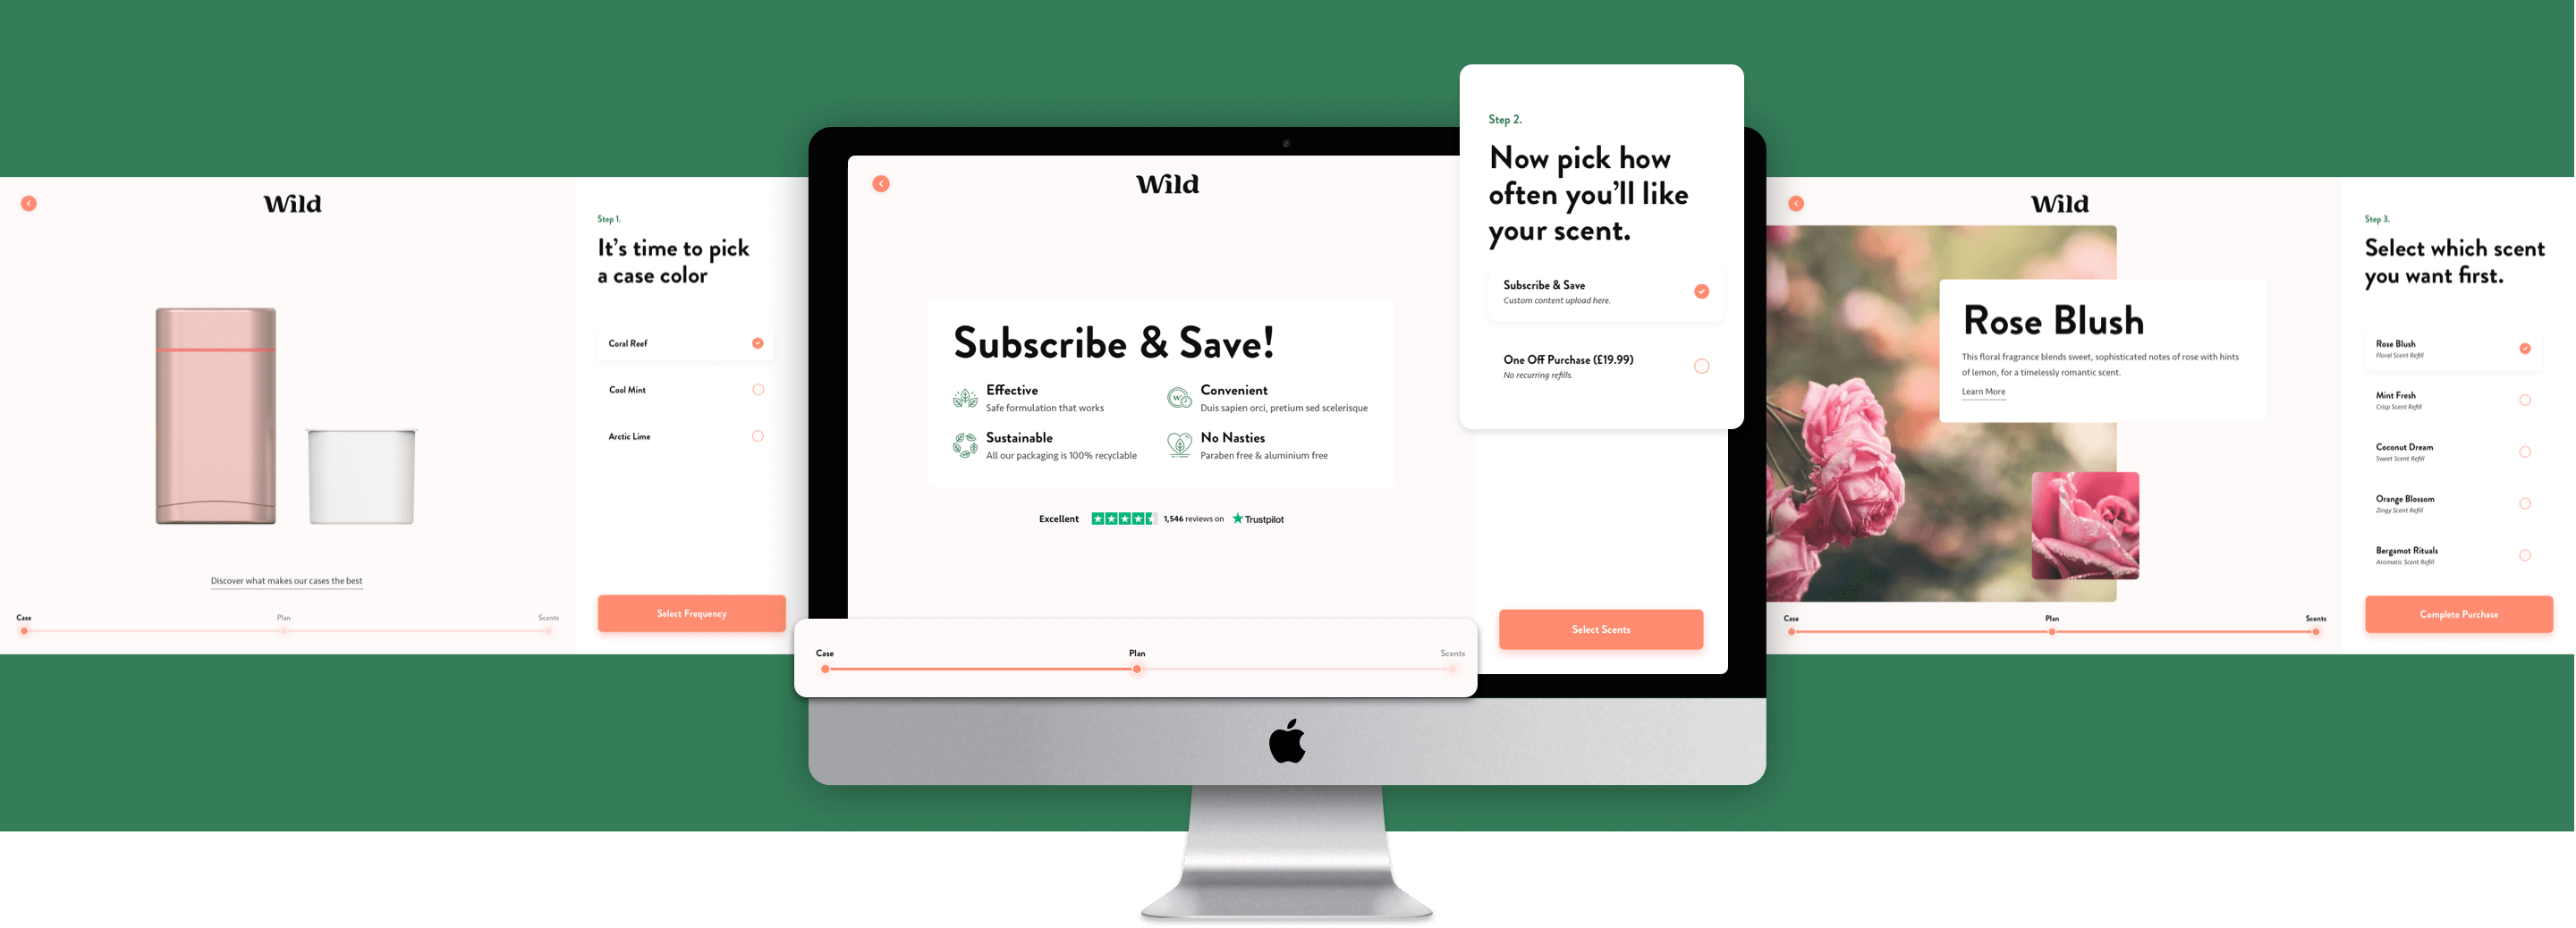 Wild Deo Subscriptions